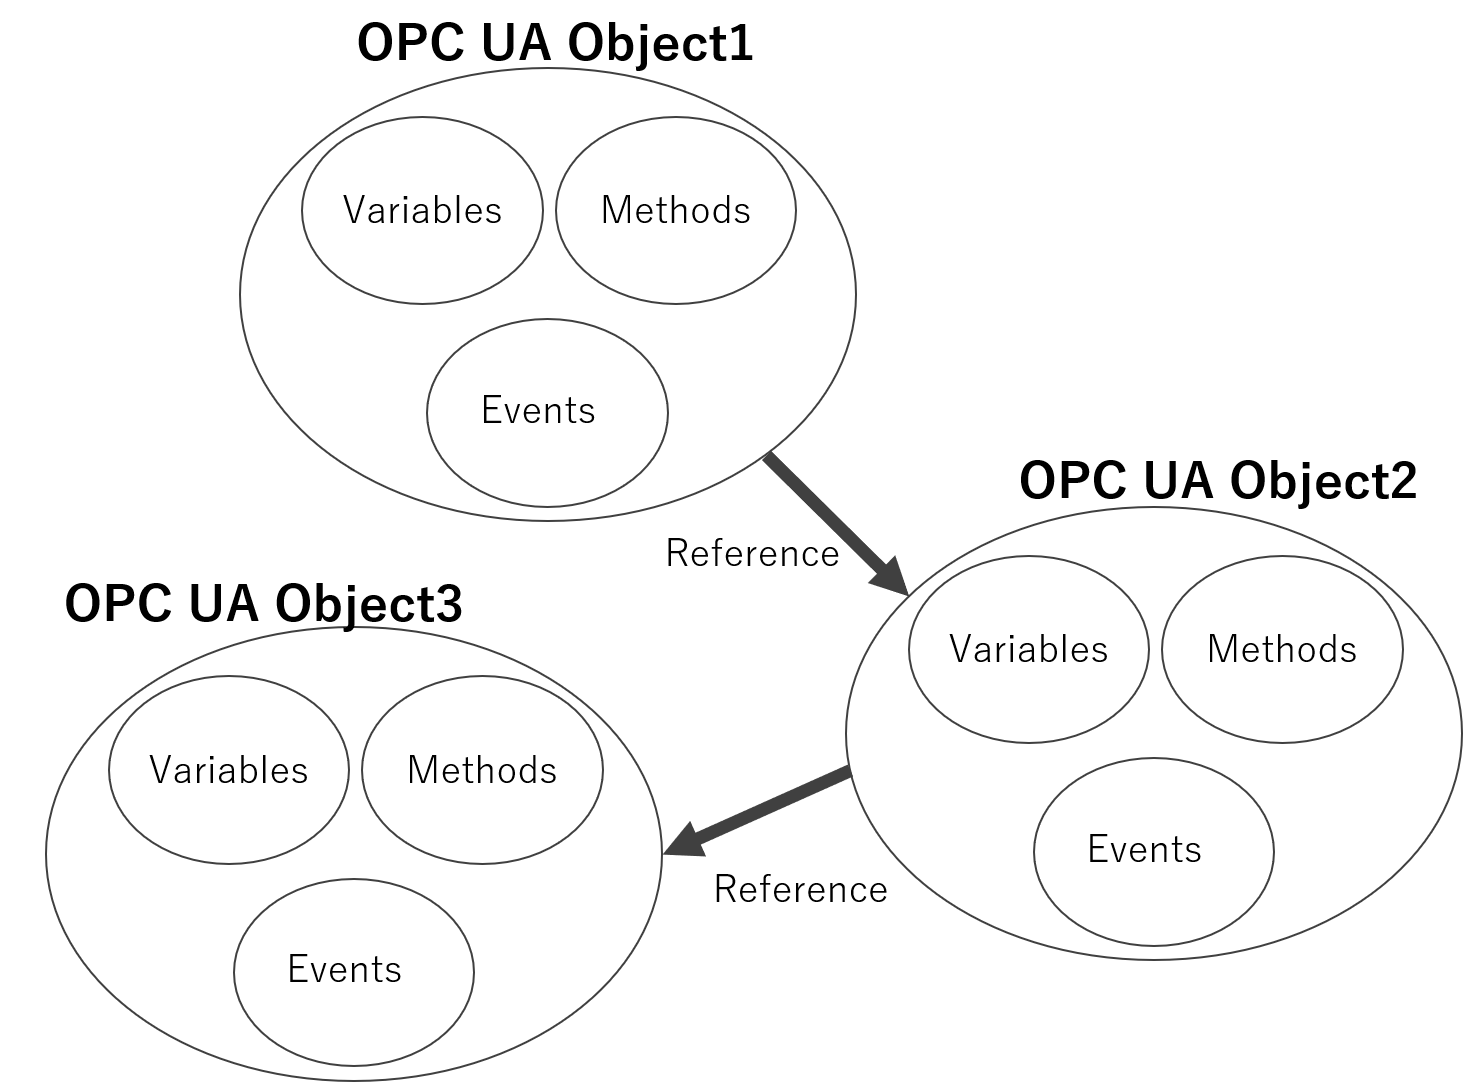 opc-ua-object-relational.png